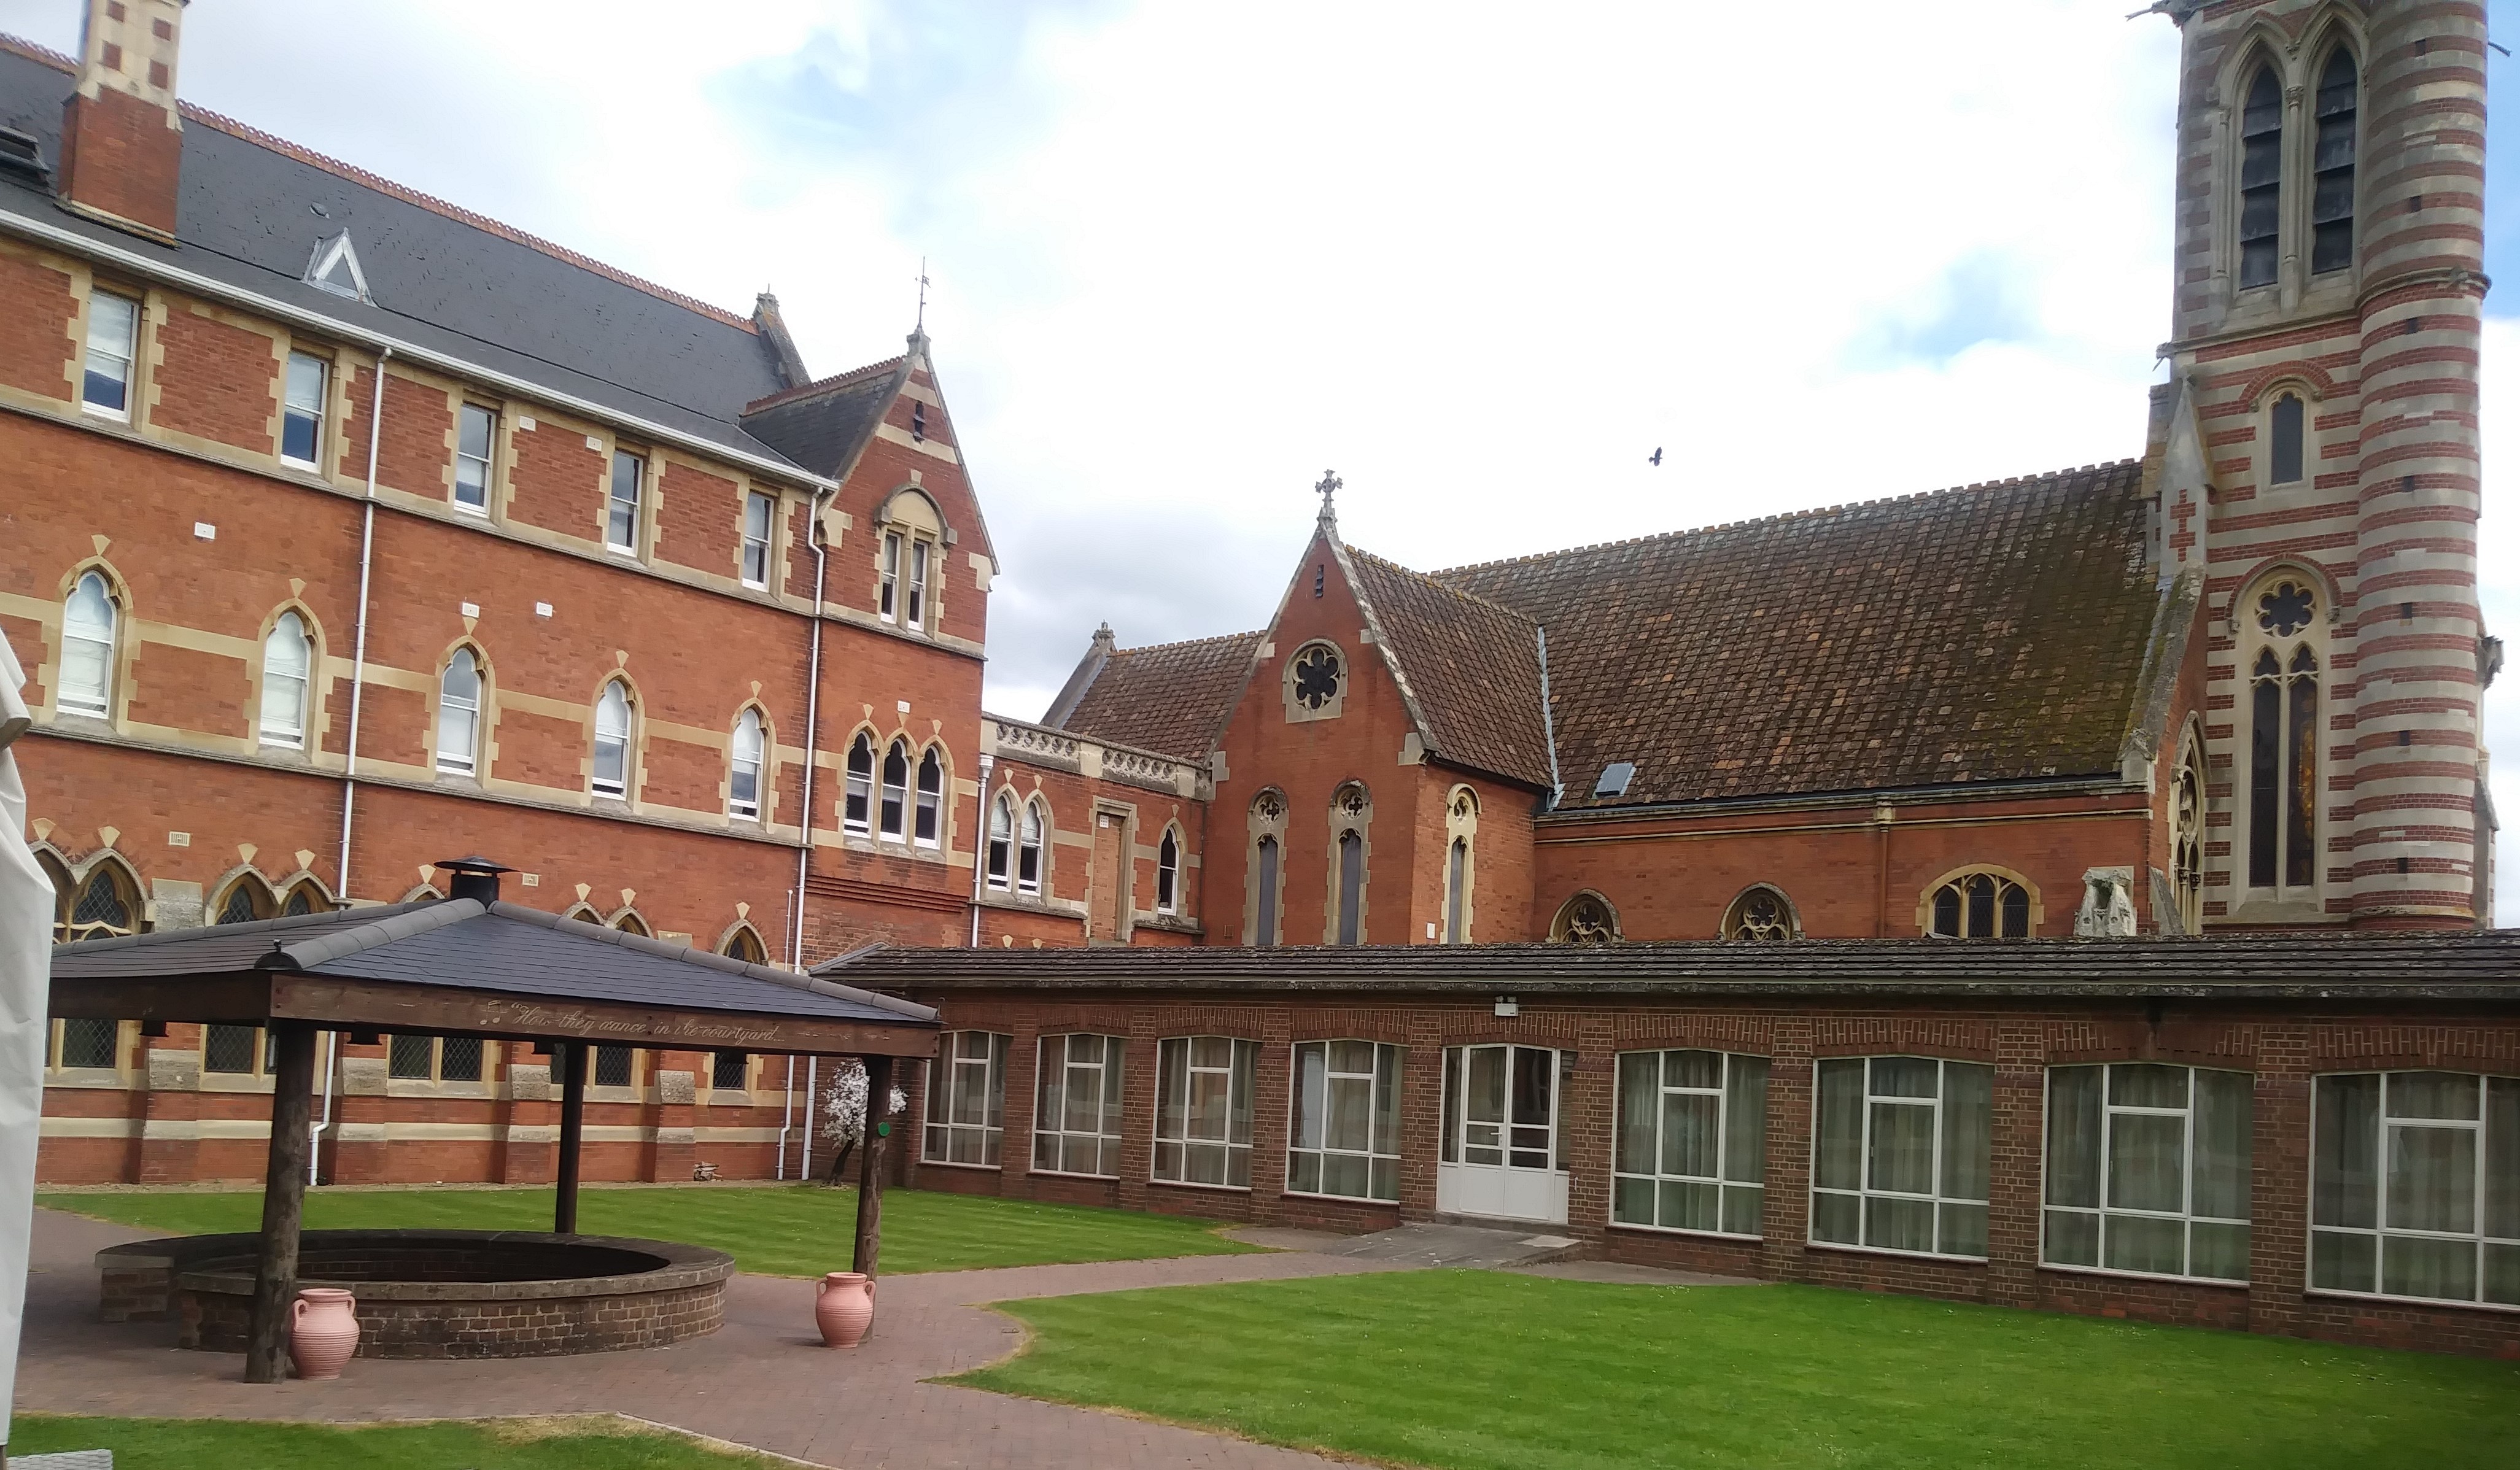 Stanbrook Abbey - image of the Abbey